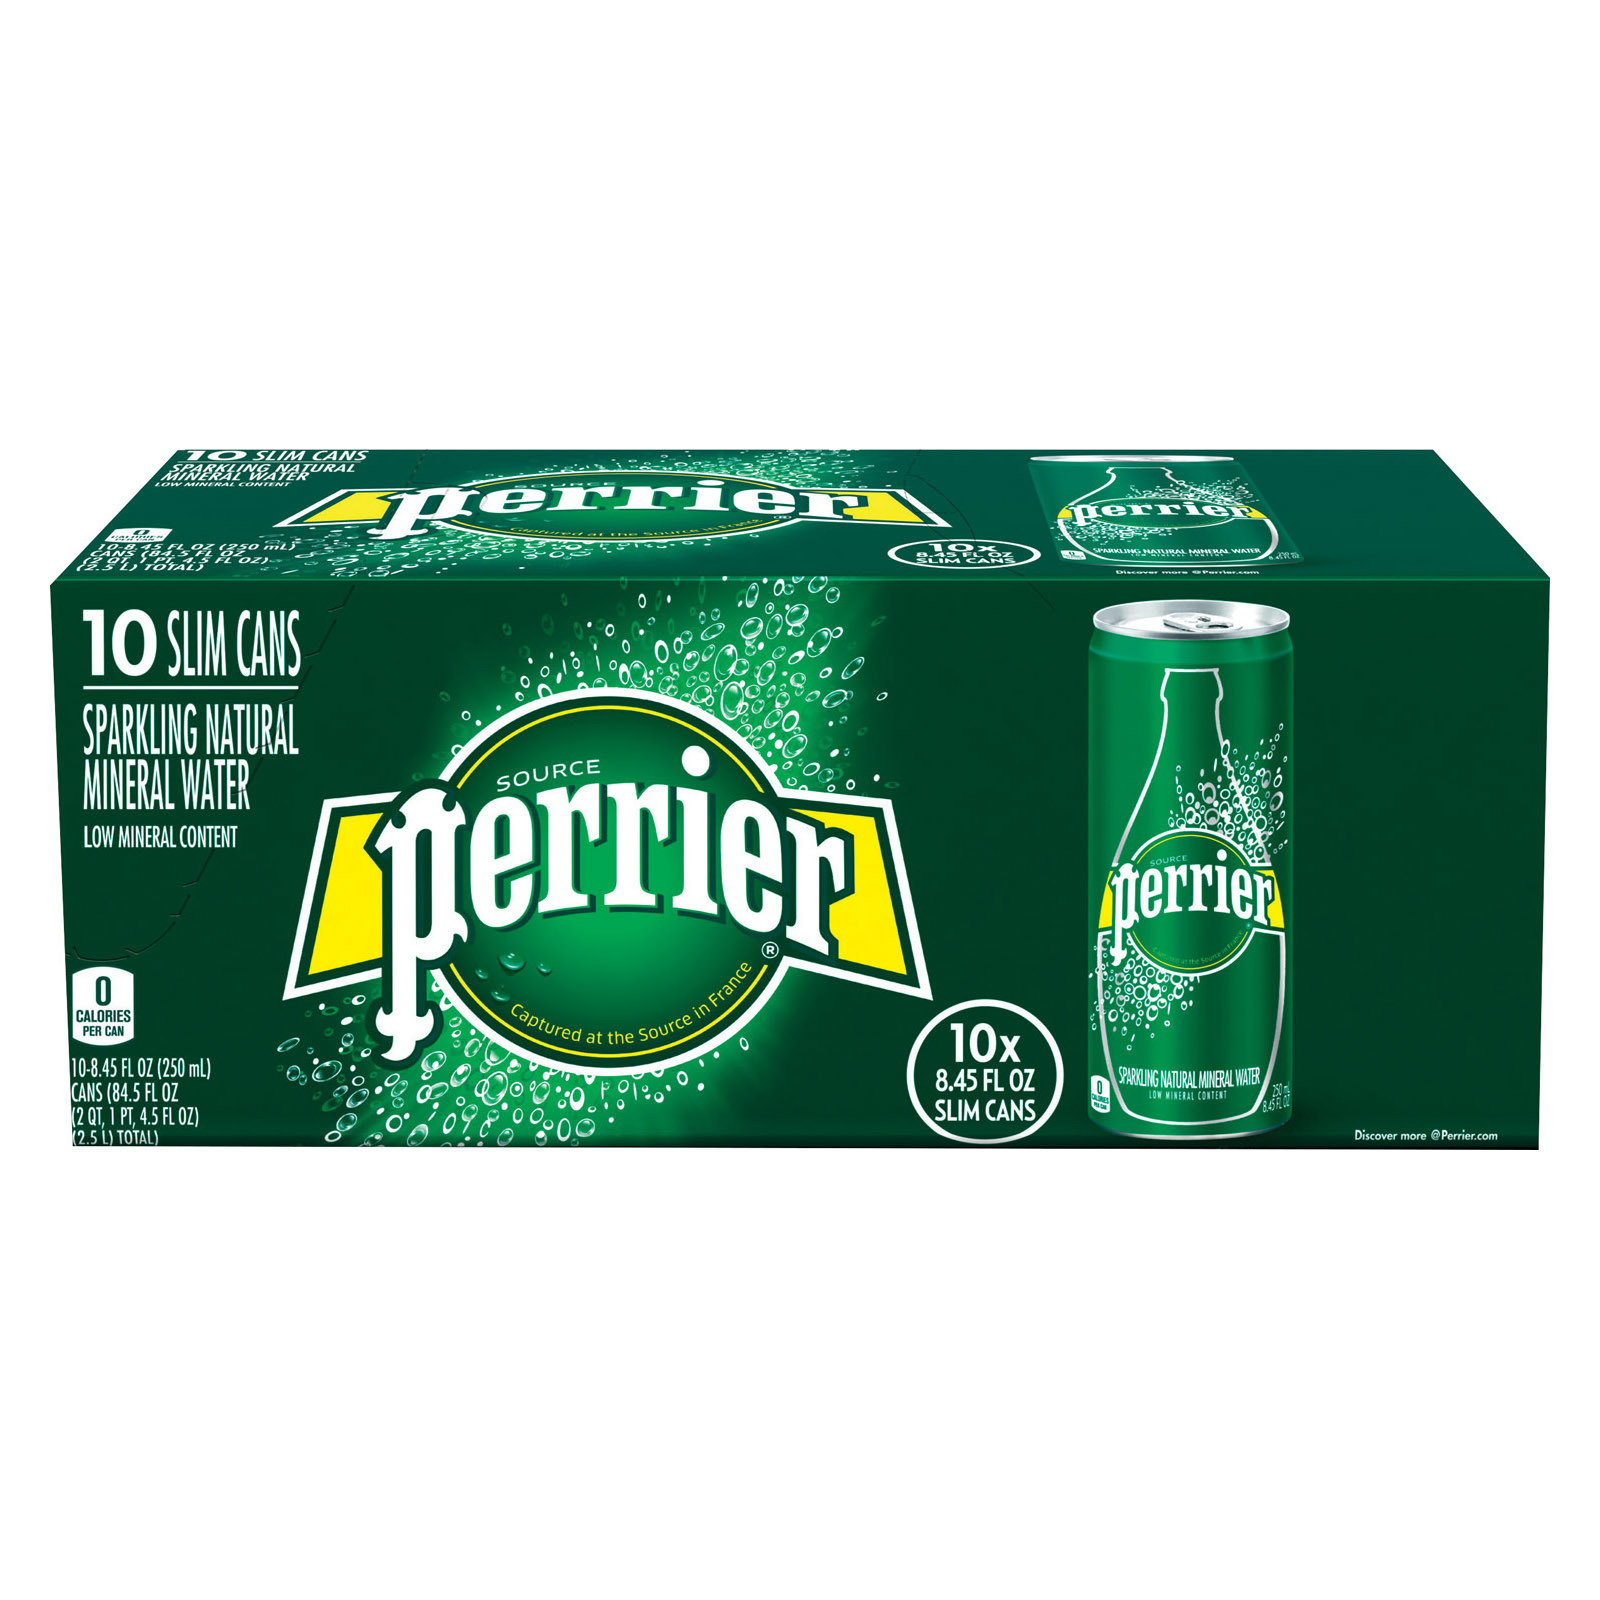 Perrier Sparkling Natural Mineral Water - Plain - Case of 3 - 250 ml